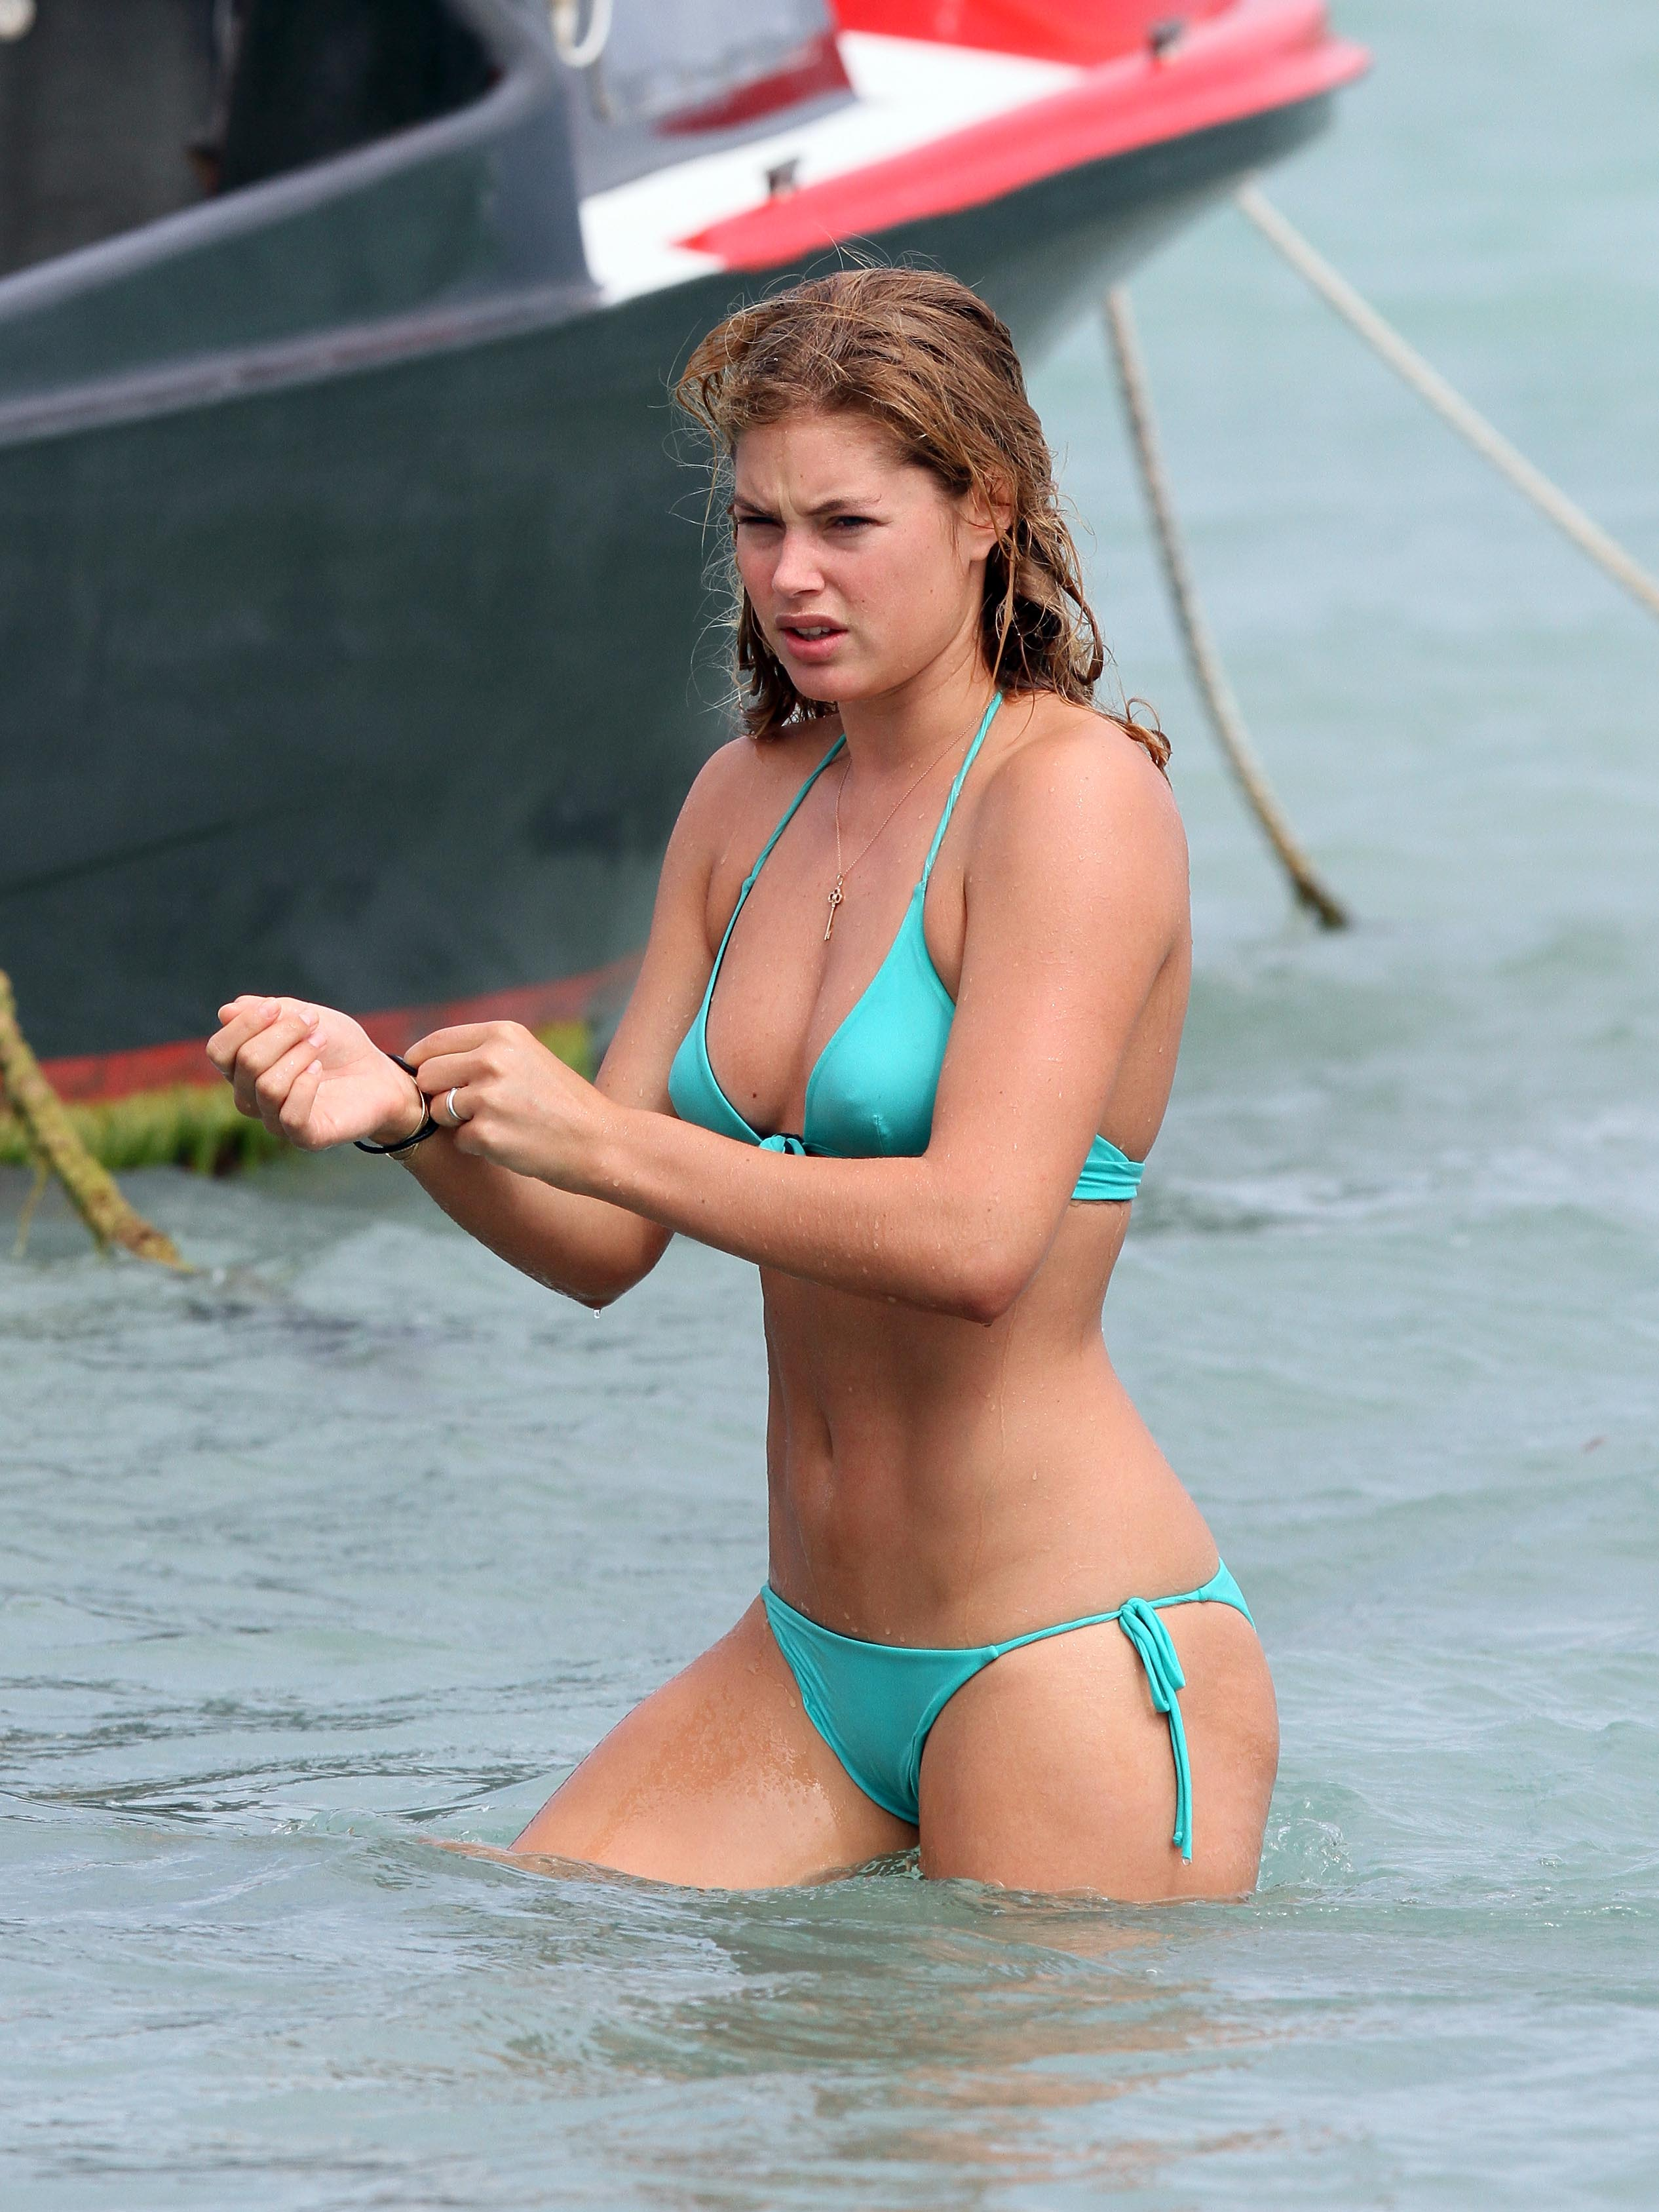 Doutzen Kroes on holiday in Saint Barthelemy.  Pictured: Doutzen Kroes  Ref: SPL153790  280110   Picture by: KCSPresse / Splash News  Splash News and Pictures Los Angeles:	310-821-2666 New York:	212-619-2666 London:	870-934-2666 photodesk@splashnews.com